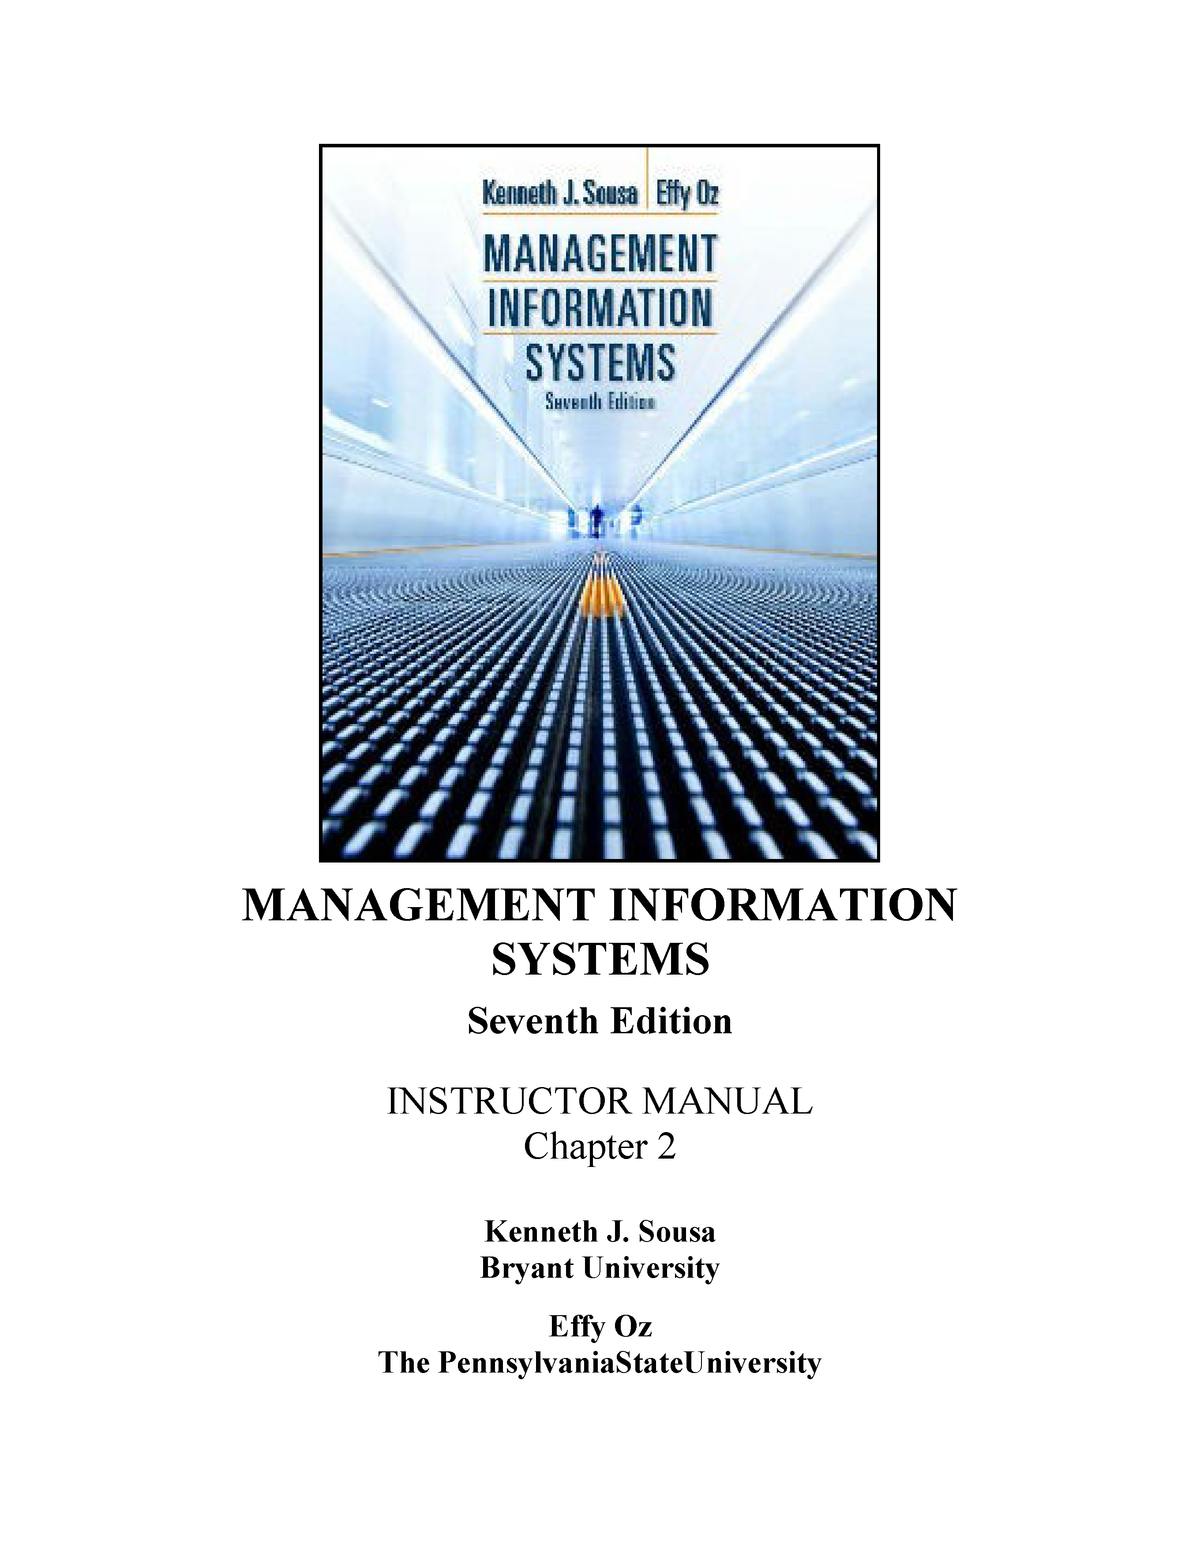 Solution Manual for Management Information Systems 7th